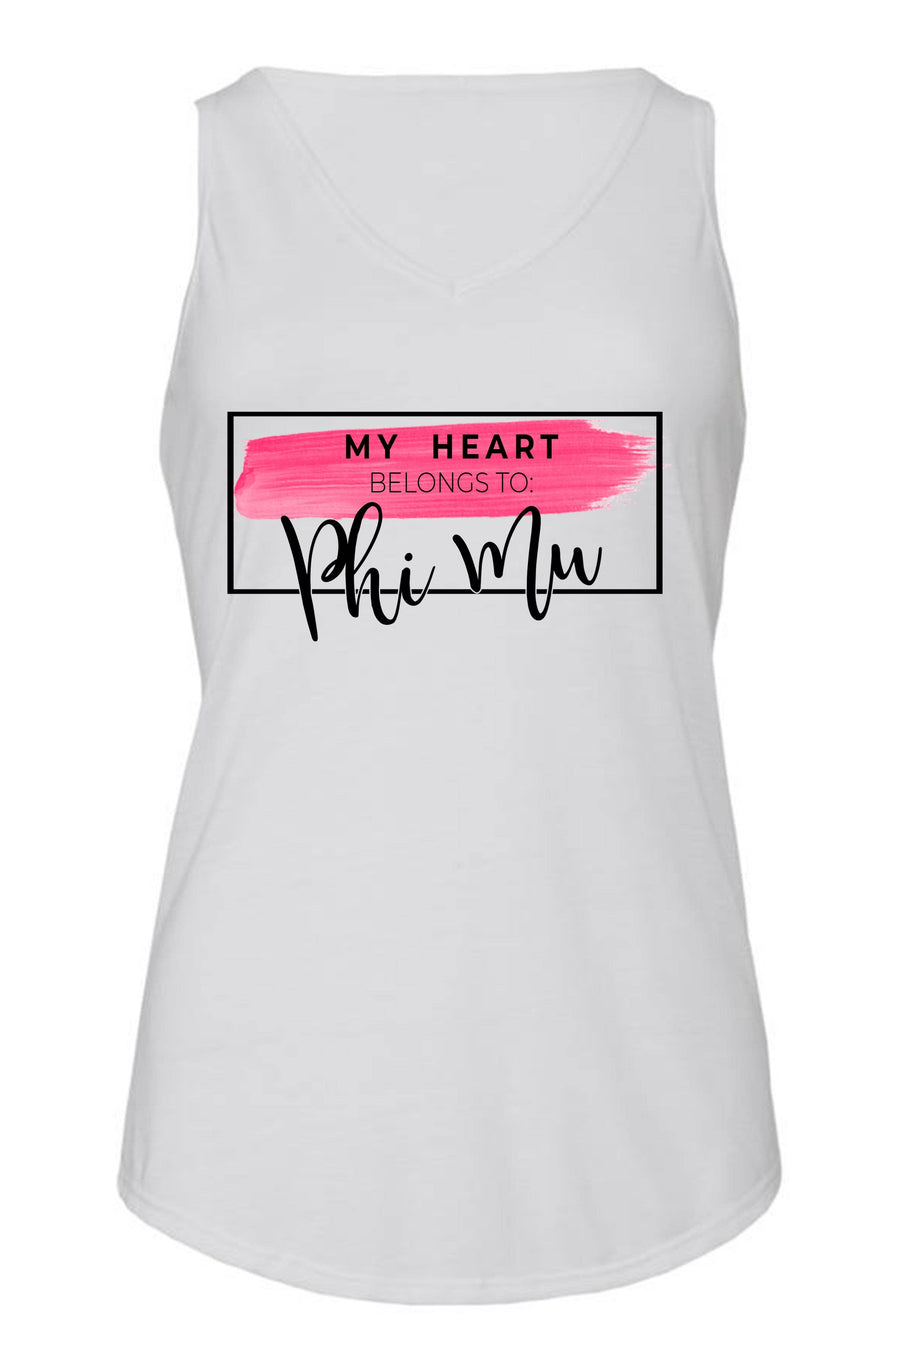 My Heart Belongs to Tank- Bella Flowy V-Neck